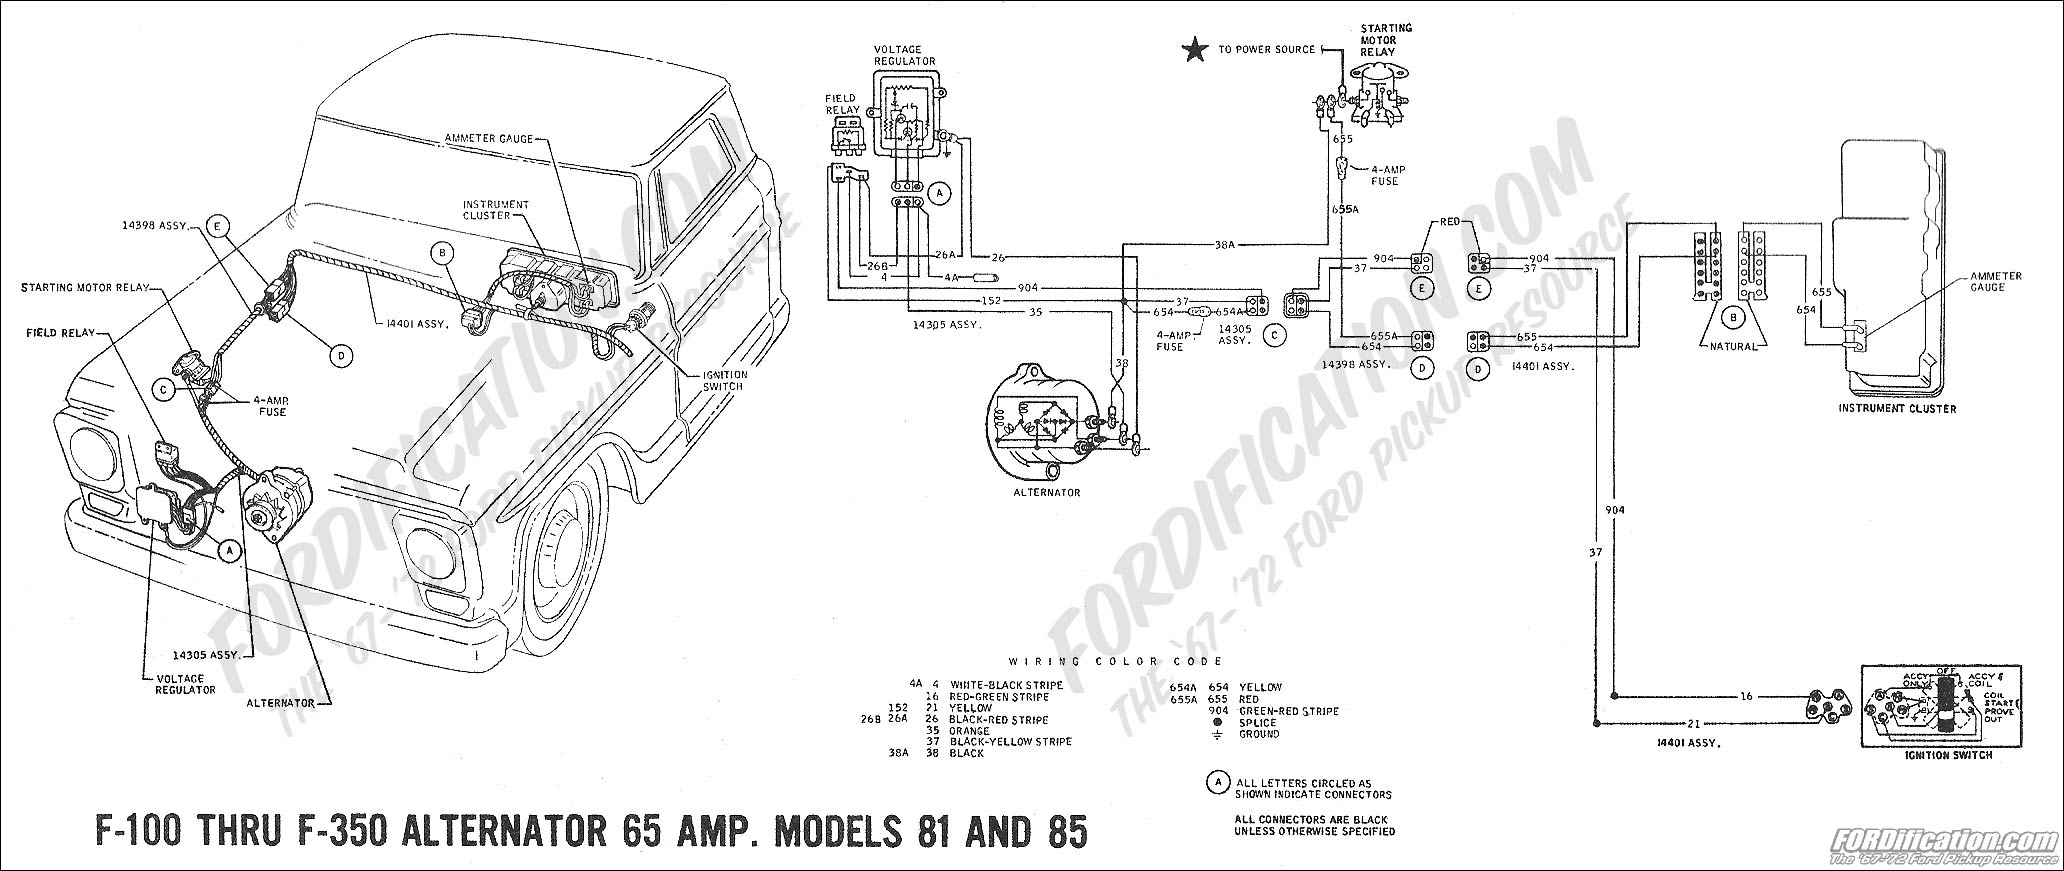 1988 ford f250 alternator wiring diagram with Viewtopic on Schematics i together with Showthread php together with 1119530 86 F350 Starting Problems further 99 CIVIC WIRING DIAGRAM COURTESY LIGHTS L21935 in addition 1989 Ford F350 Wiring Diagram Color Code.